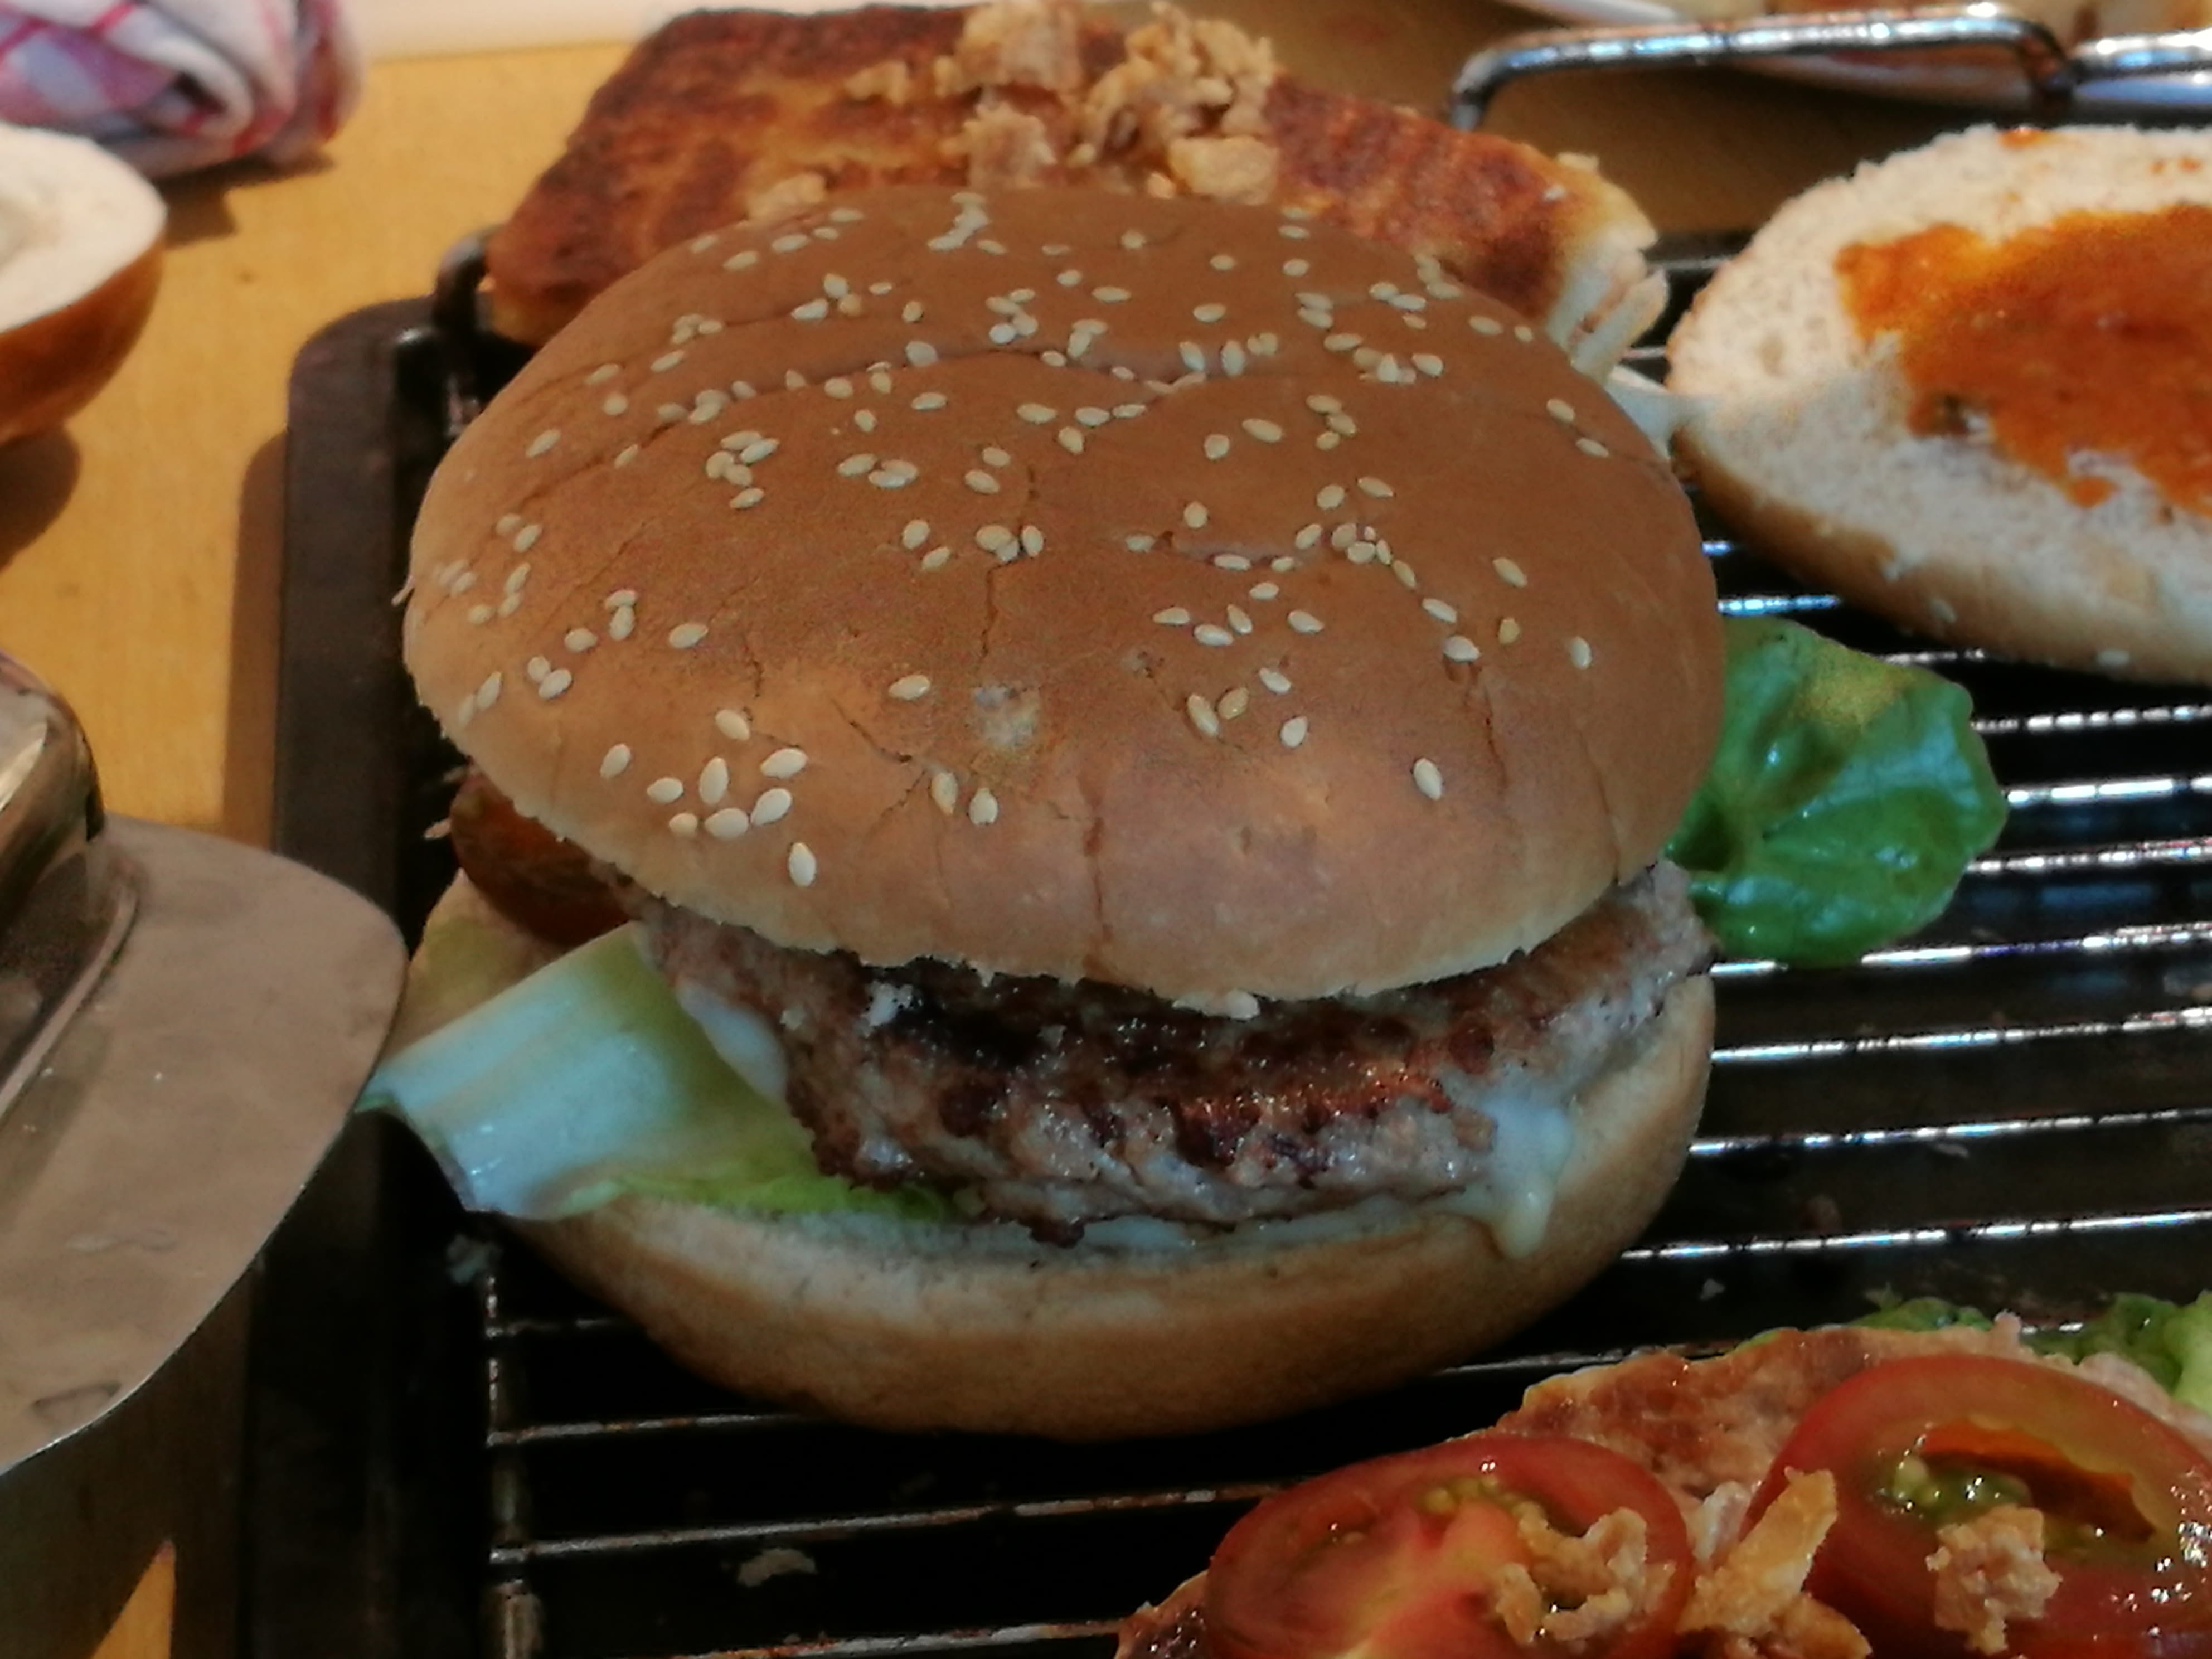 burger with patty side view